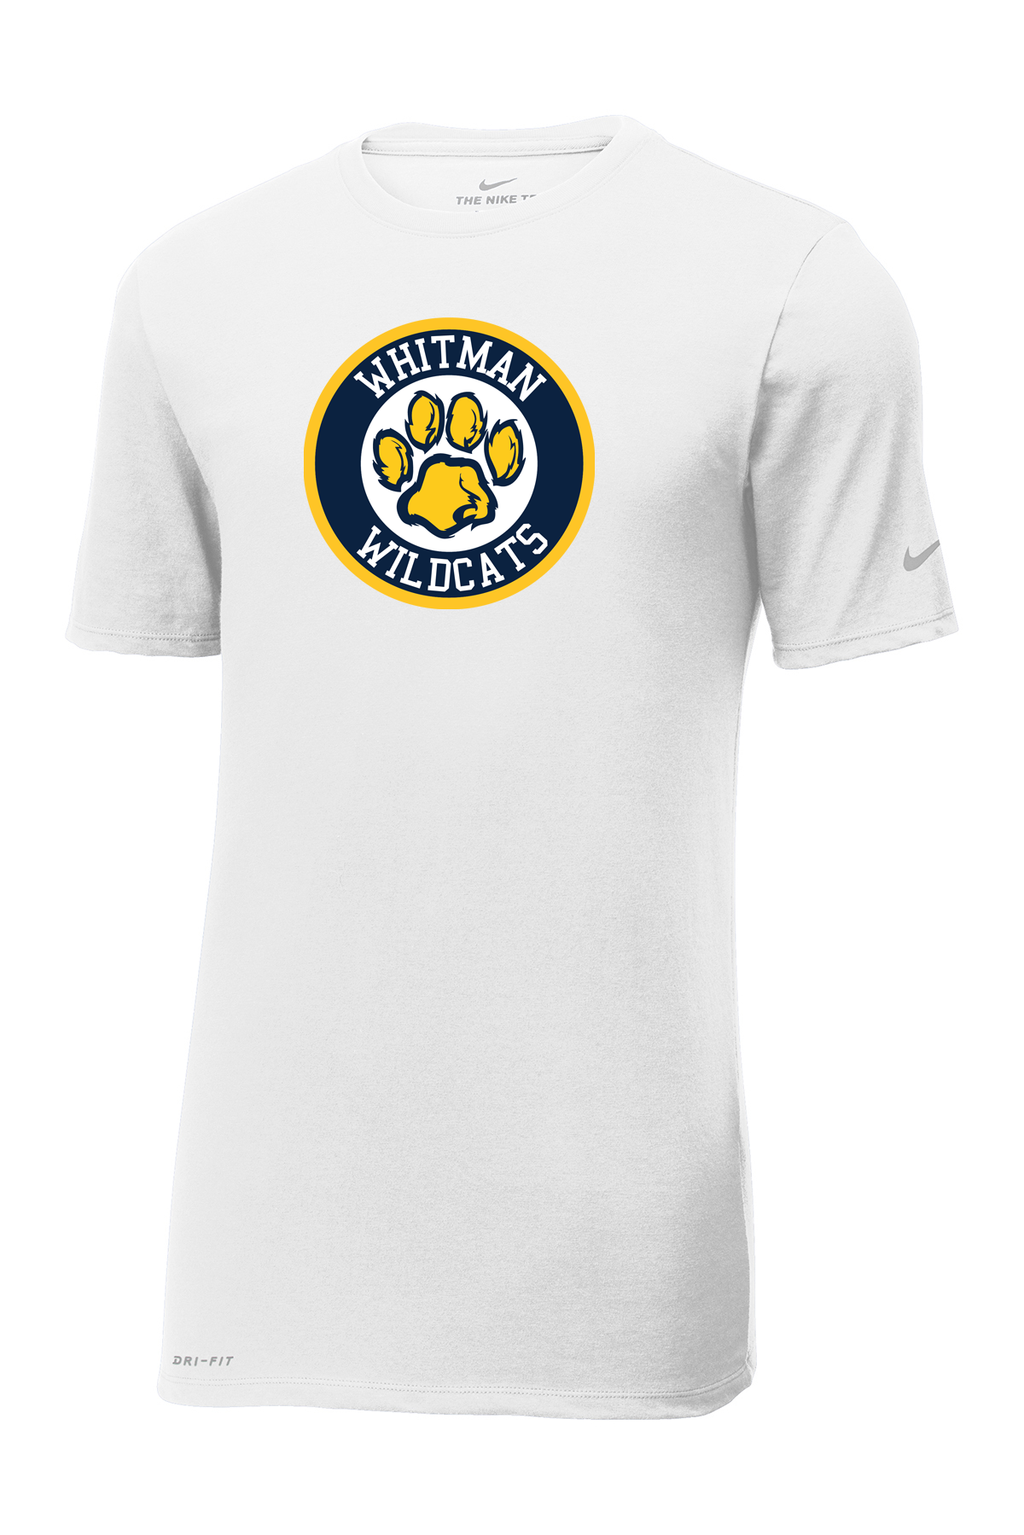 Whitman Wildcats Nike Dri-FIT Tee